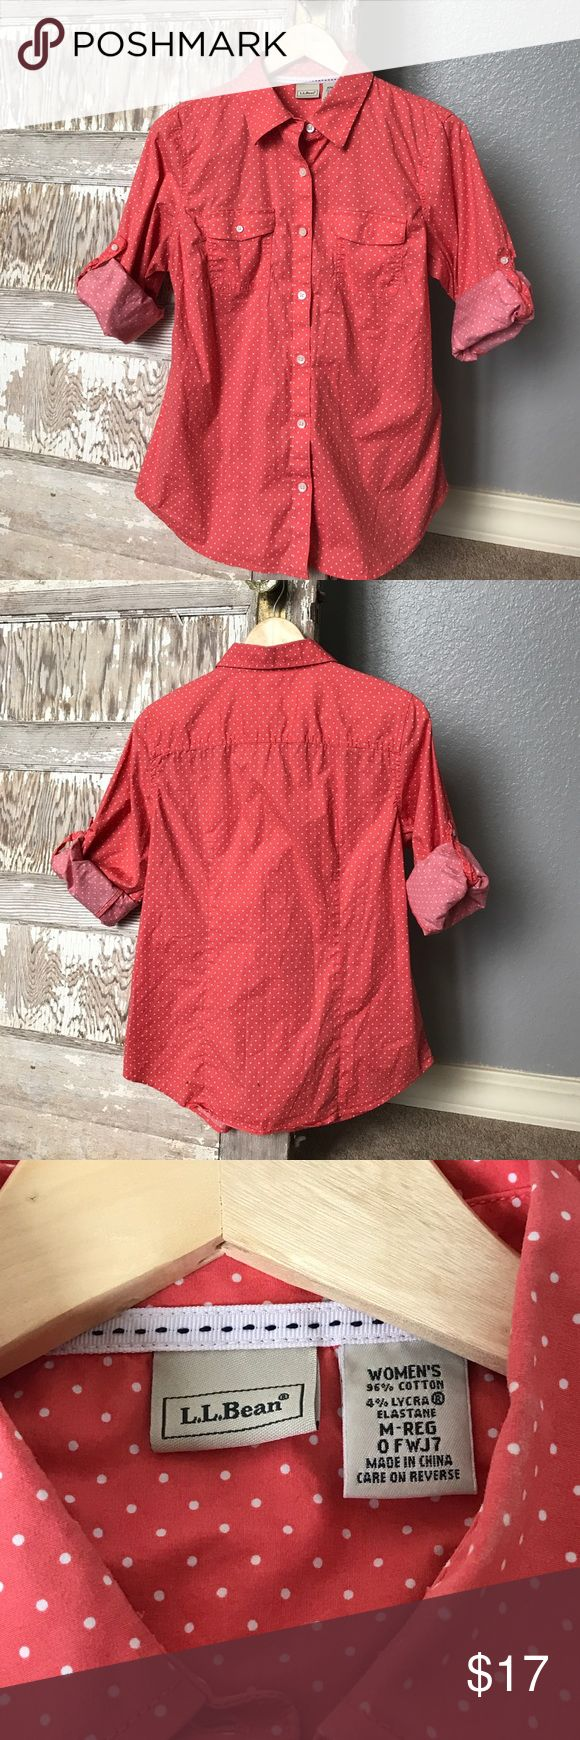 L.L. Bean Top L.L. Bean Top in excellent used condition. It's a great color for Spring! L.L. Bean Tops Button Down Shirts